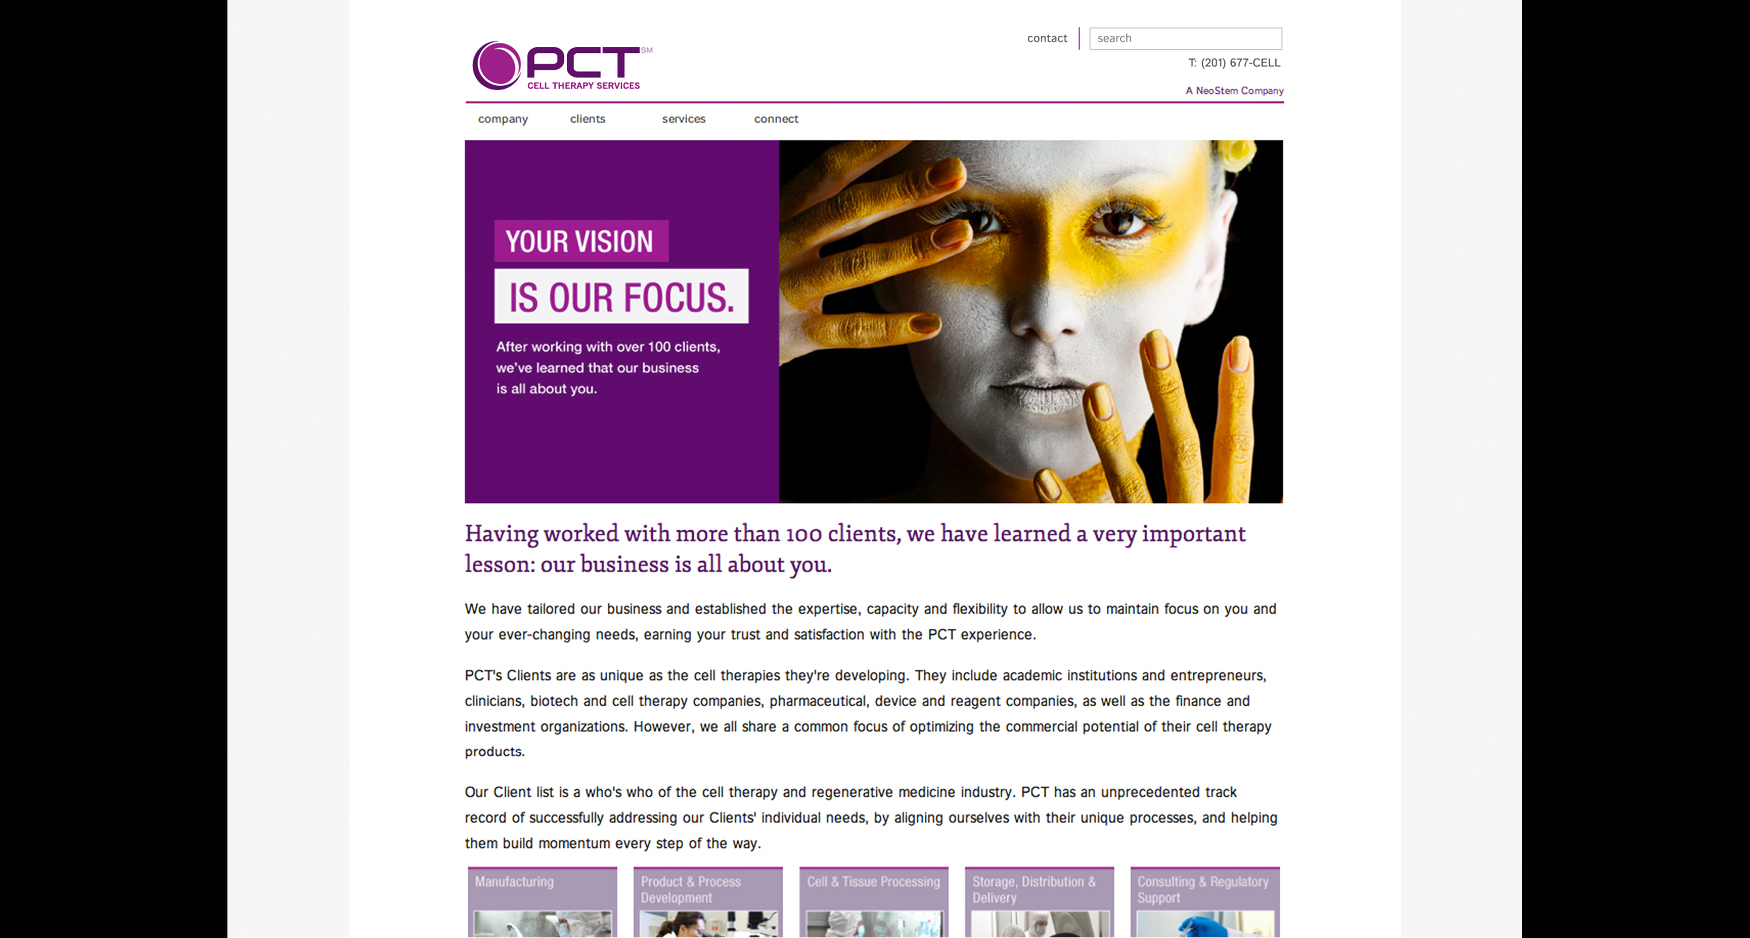 BP Large Website Images10 - PCT CELL THERAPY - CORPORATE WEBSITE